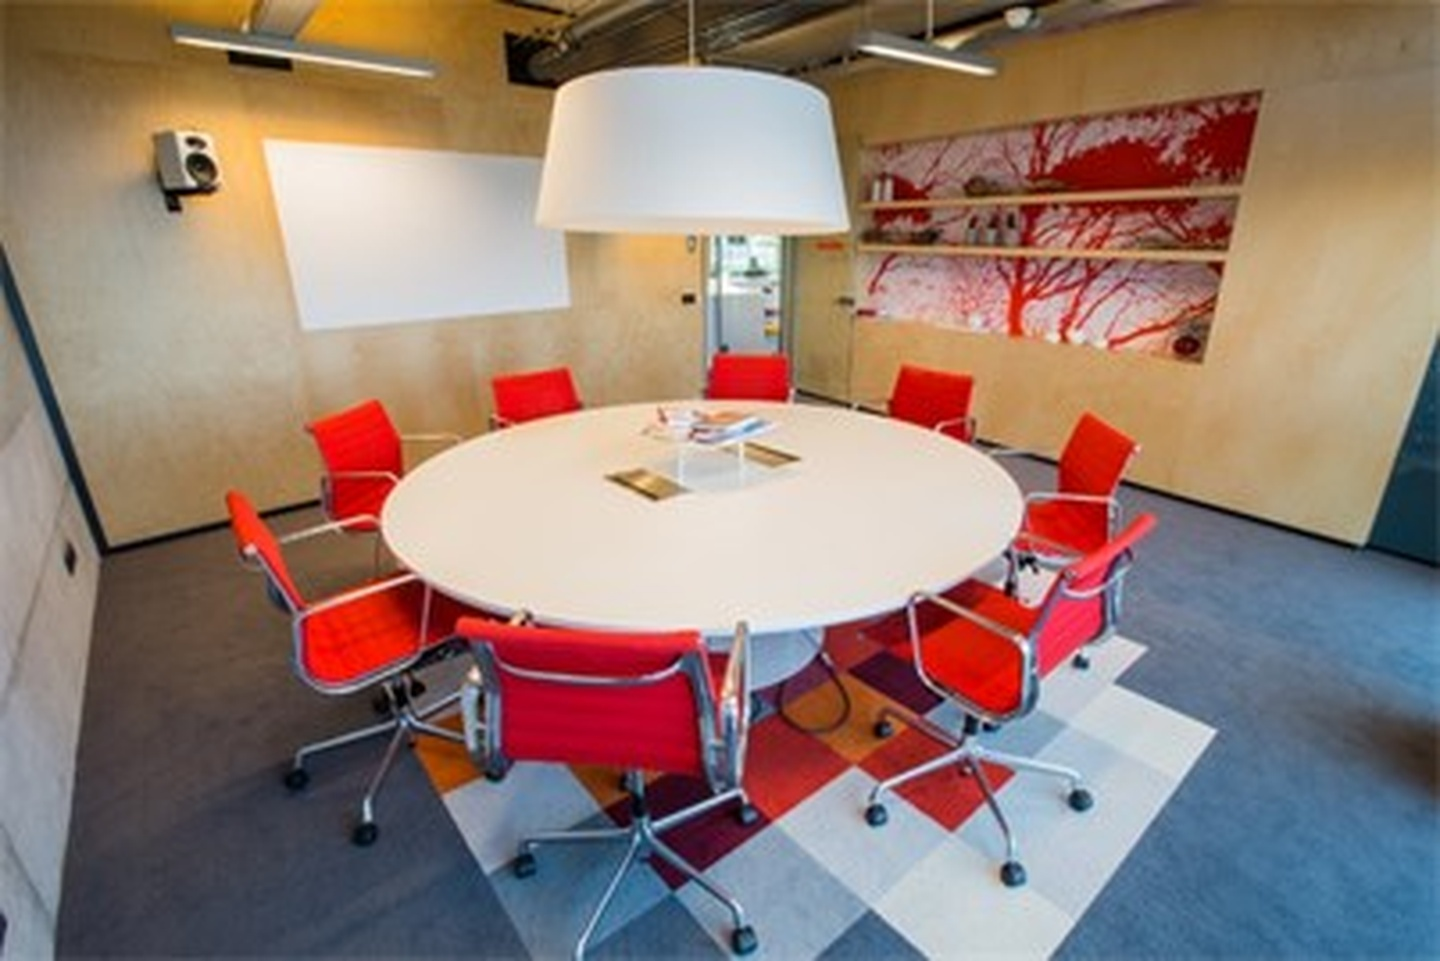 Amsterdam conference rooms Meeting room Inspirende Locations - Decide image 0